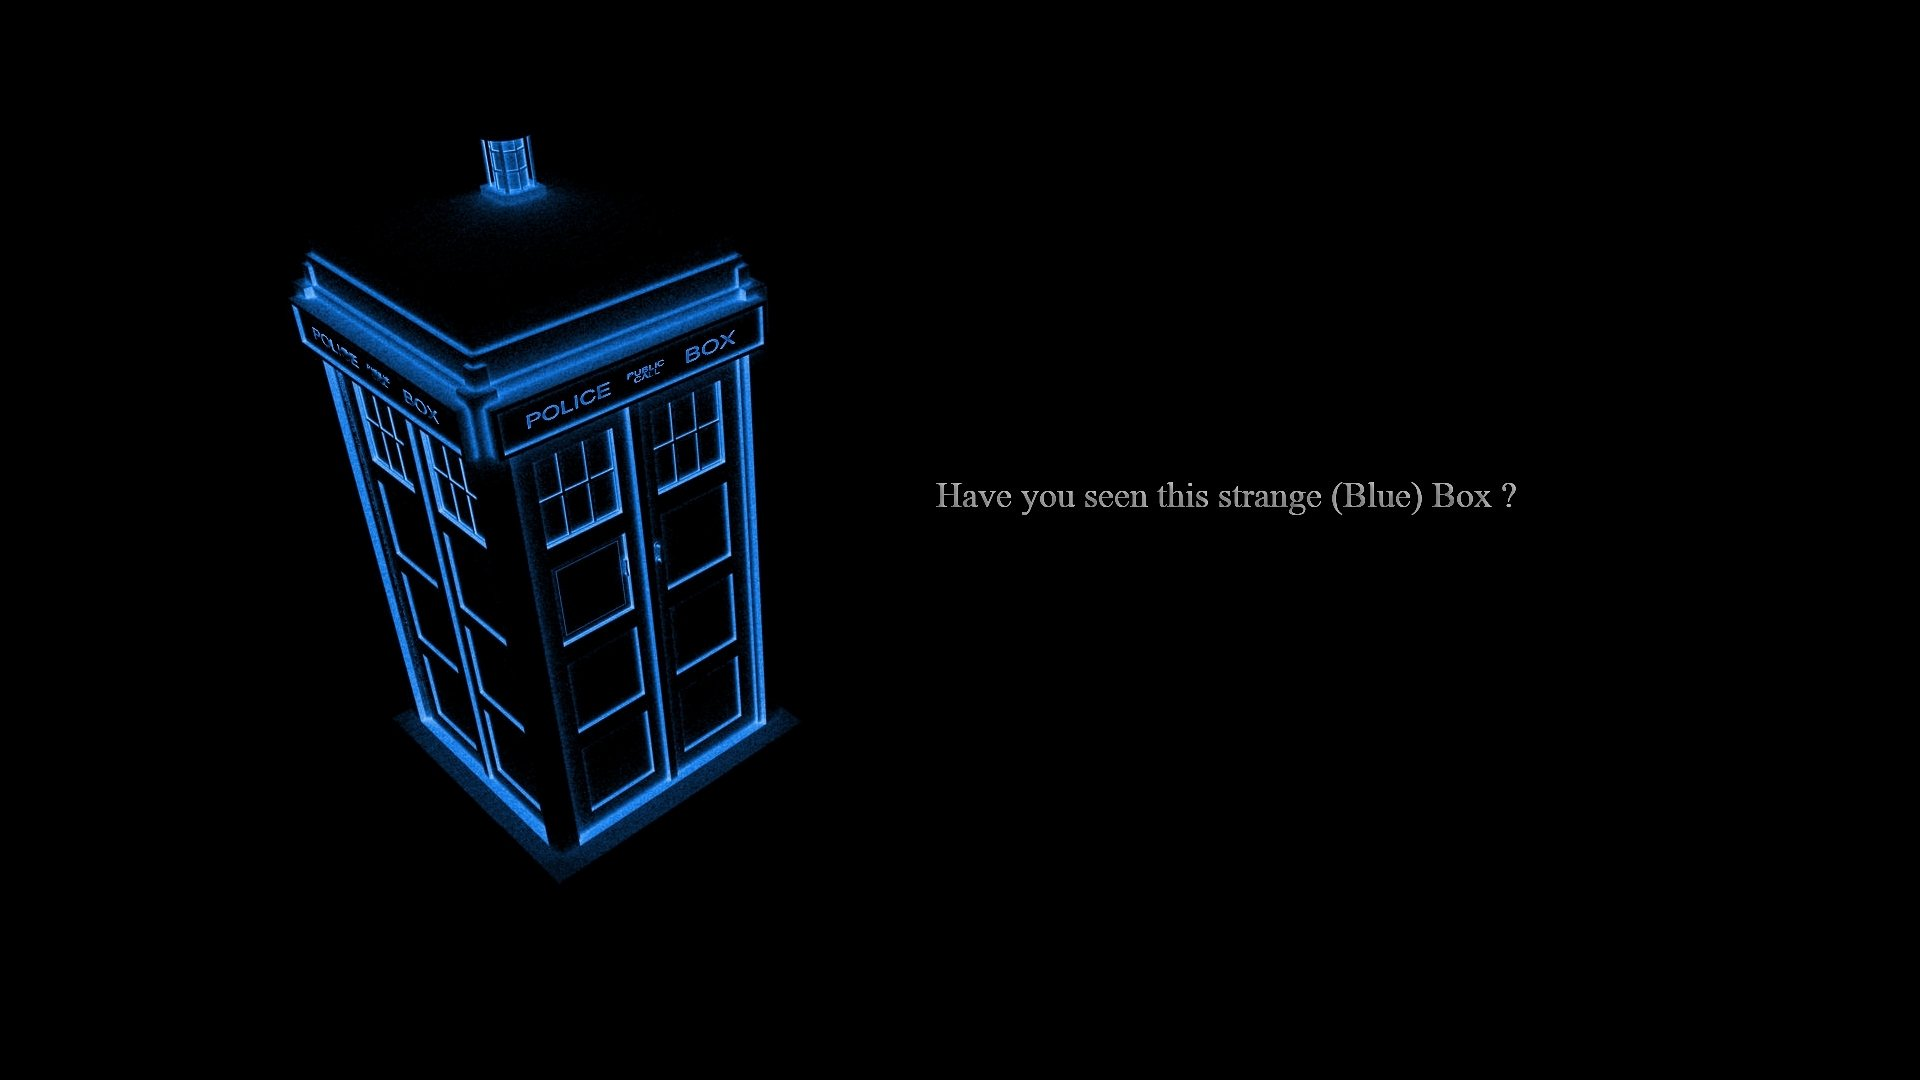 Doctor Who Hd Wallpaper Background Image 1920x1080 Id 556237